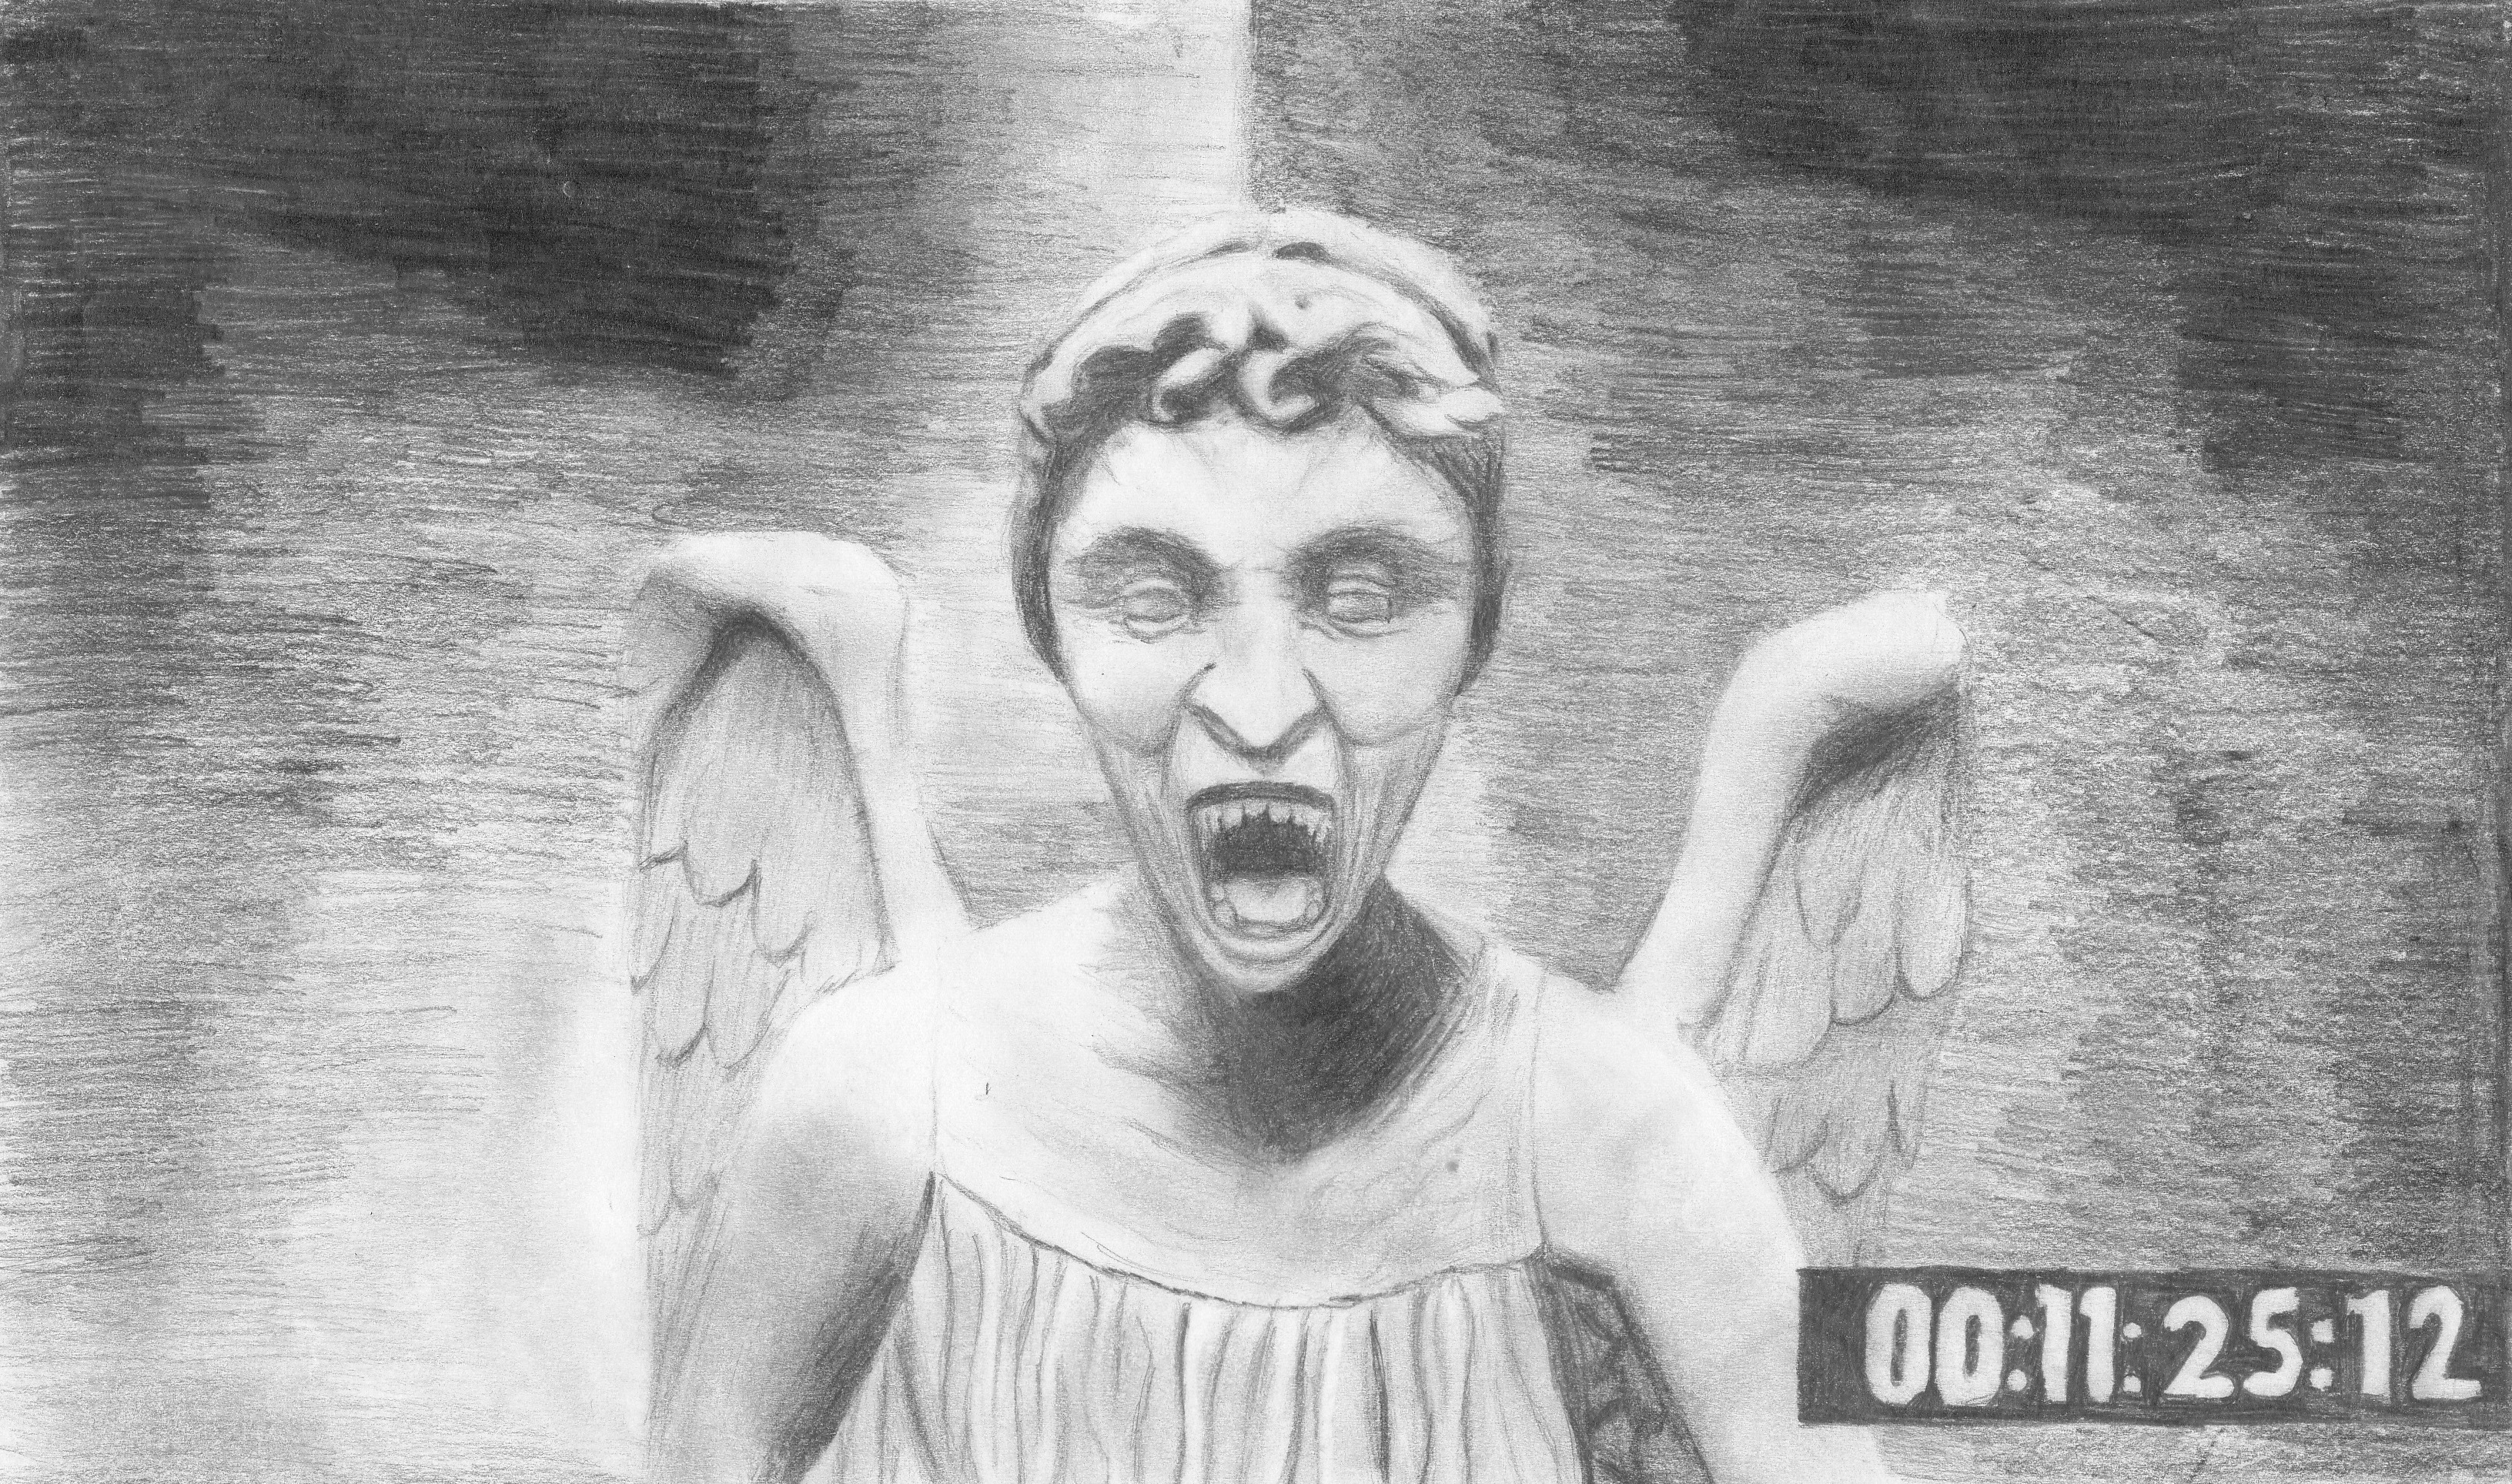 Wallpapers Weeping Angel Gif Angels Moving 1024x768 182651 3263x1928